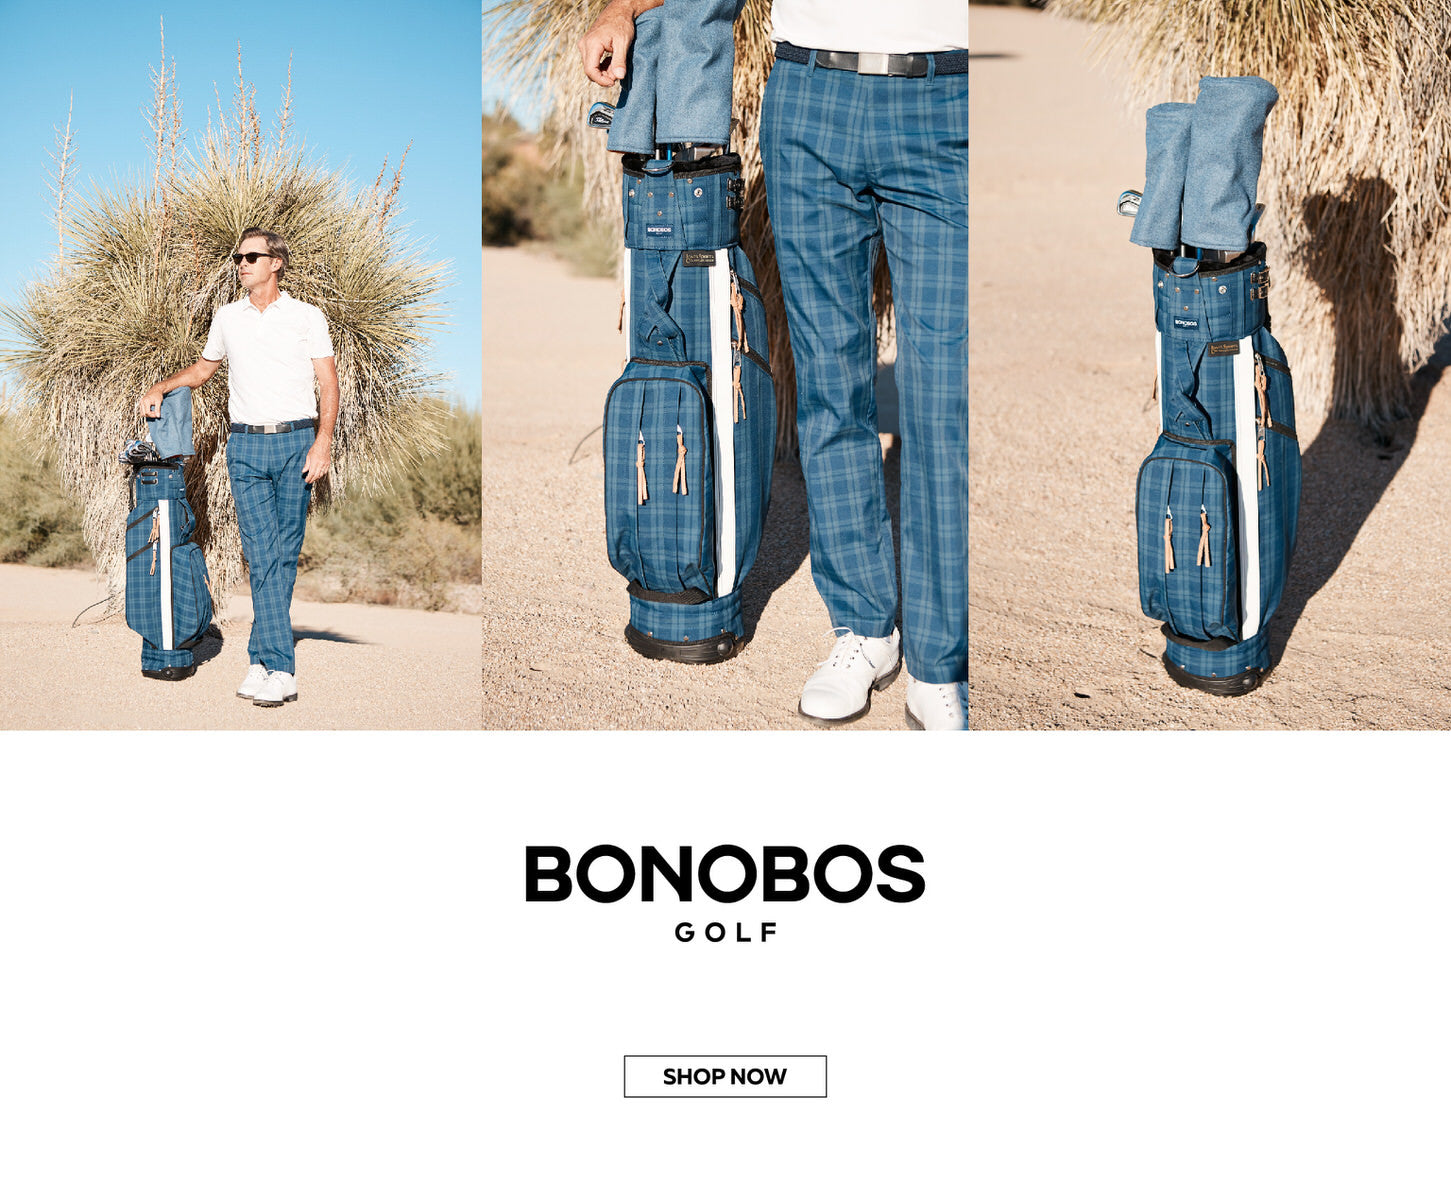 https://www.jonesgolfbags.com/products/jones-x-bonobos-highlander-classic-stand-bag?variant=36824991757